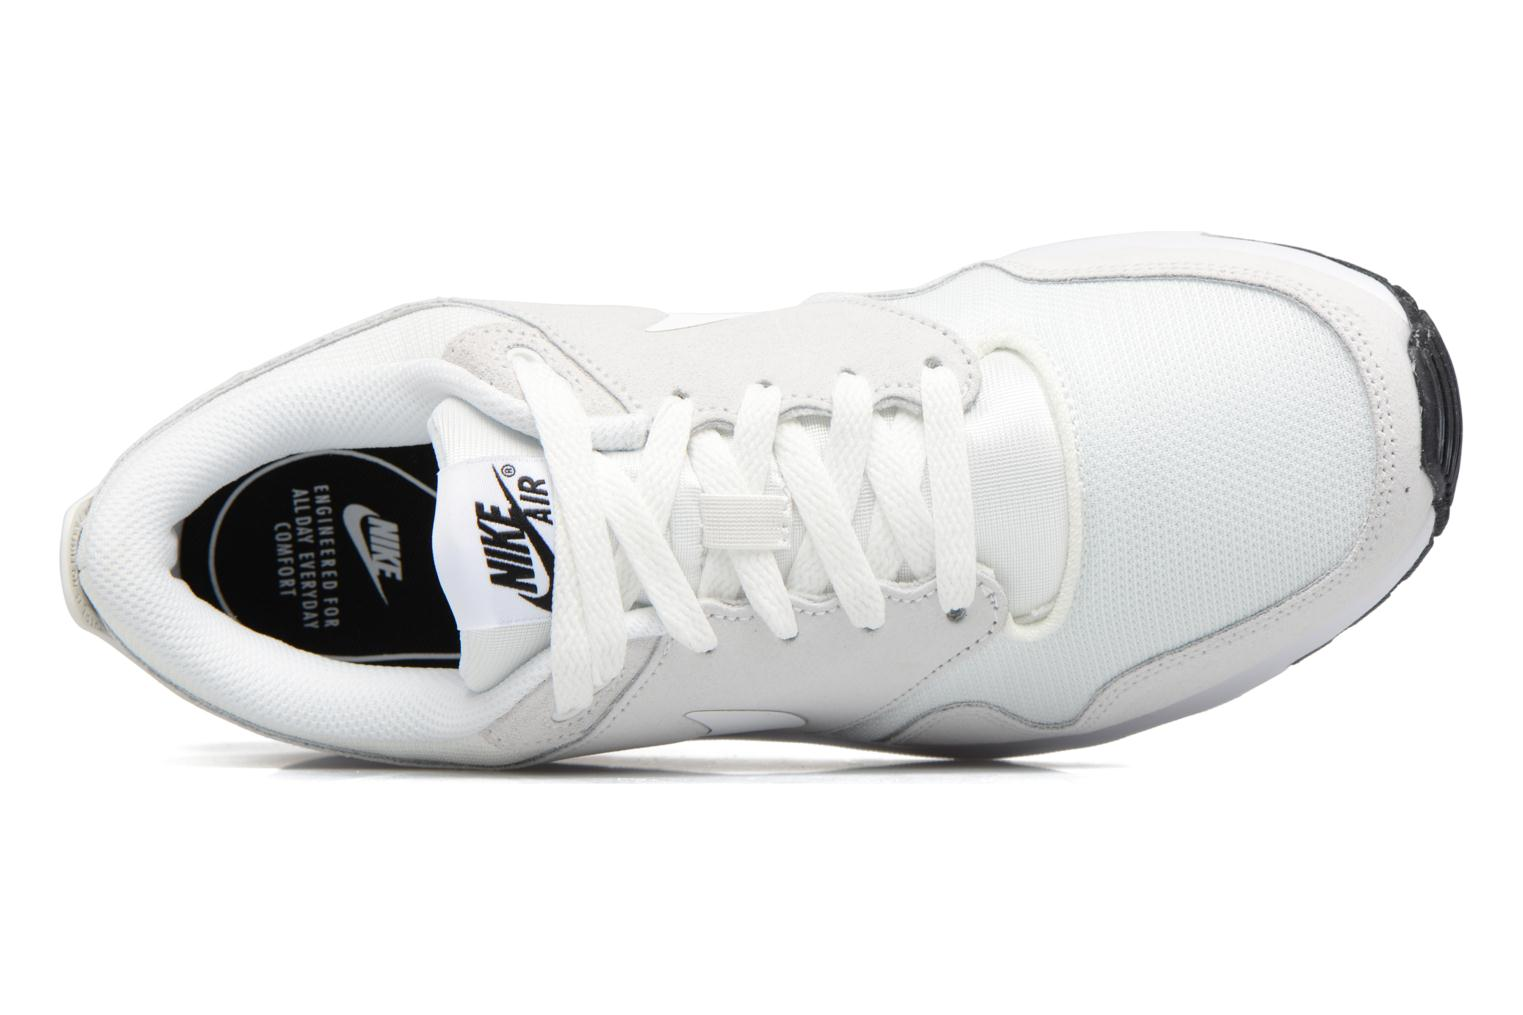 Nike Air Vibenna White